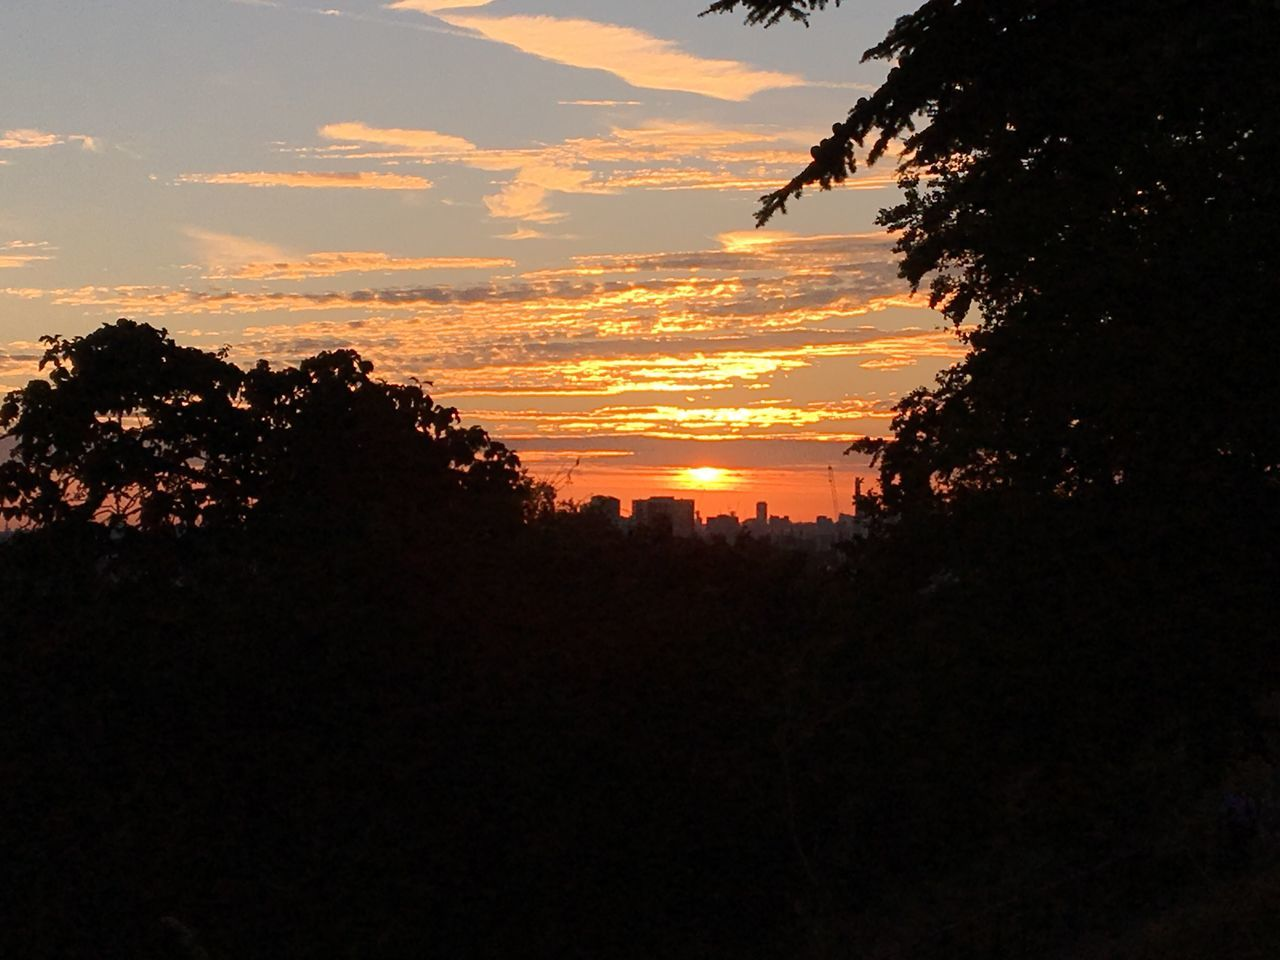 Greenwich Park Sky Sky And Clouds Sillouette Tree Treeline Sunset Beauty In Nature Tree Scenics Outdoors No People Nature Tranquil Scene Orange Color